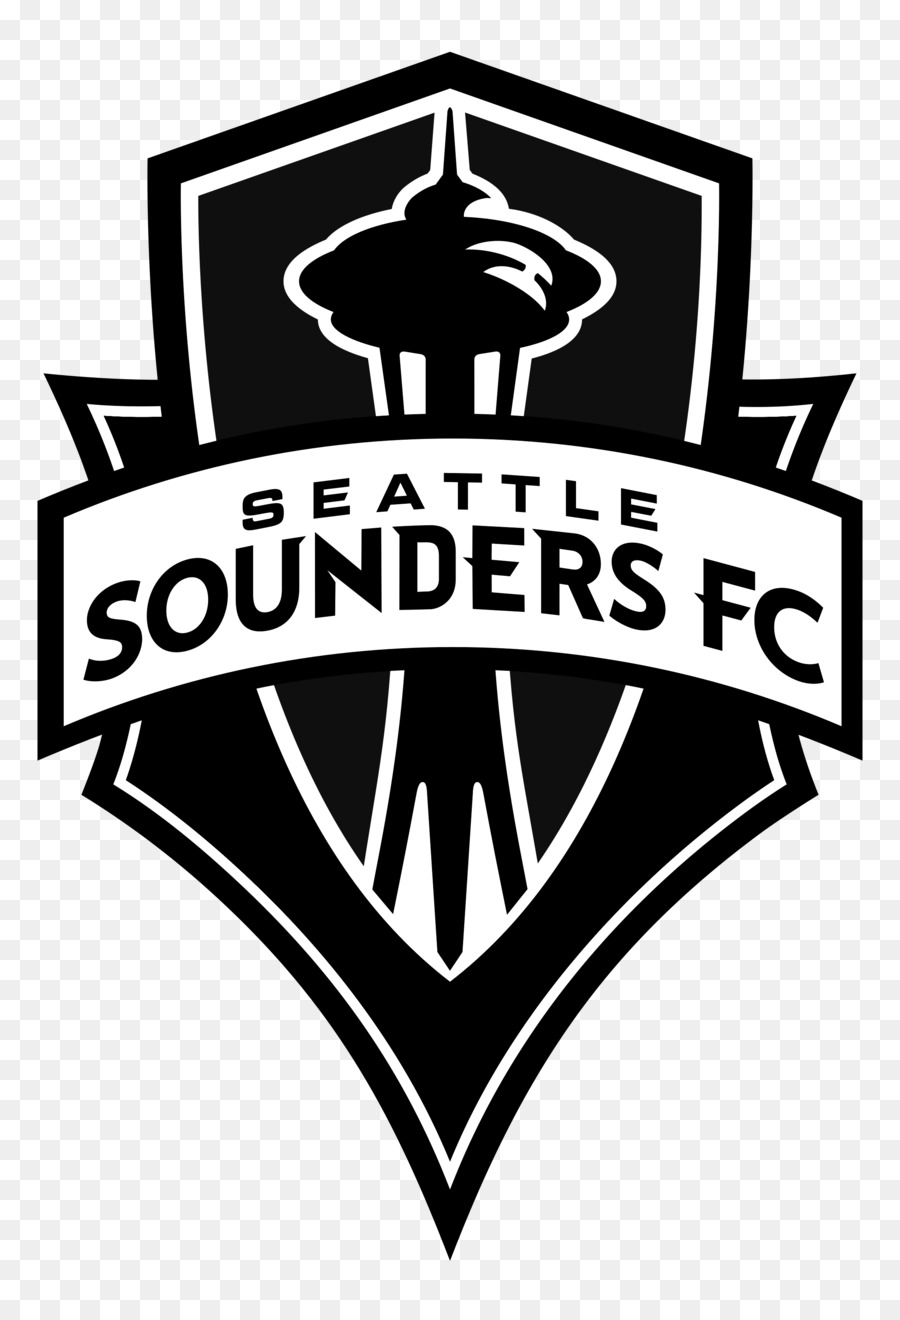 Seattle sounders logo clipart png library stock City Logo clipart - Football, Font, Product, transparent ... png library stock